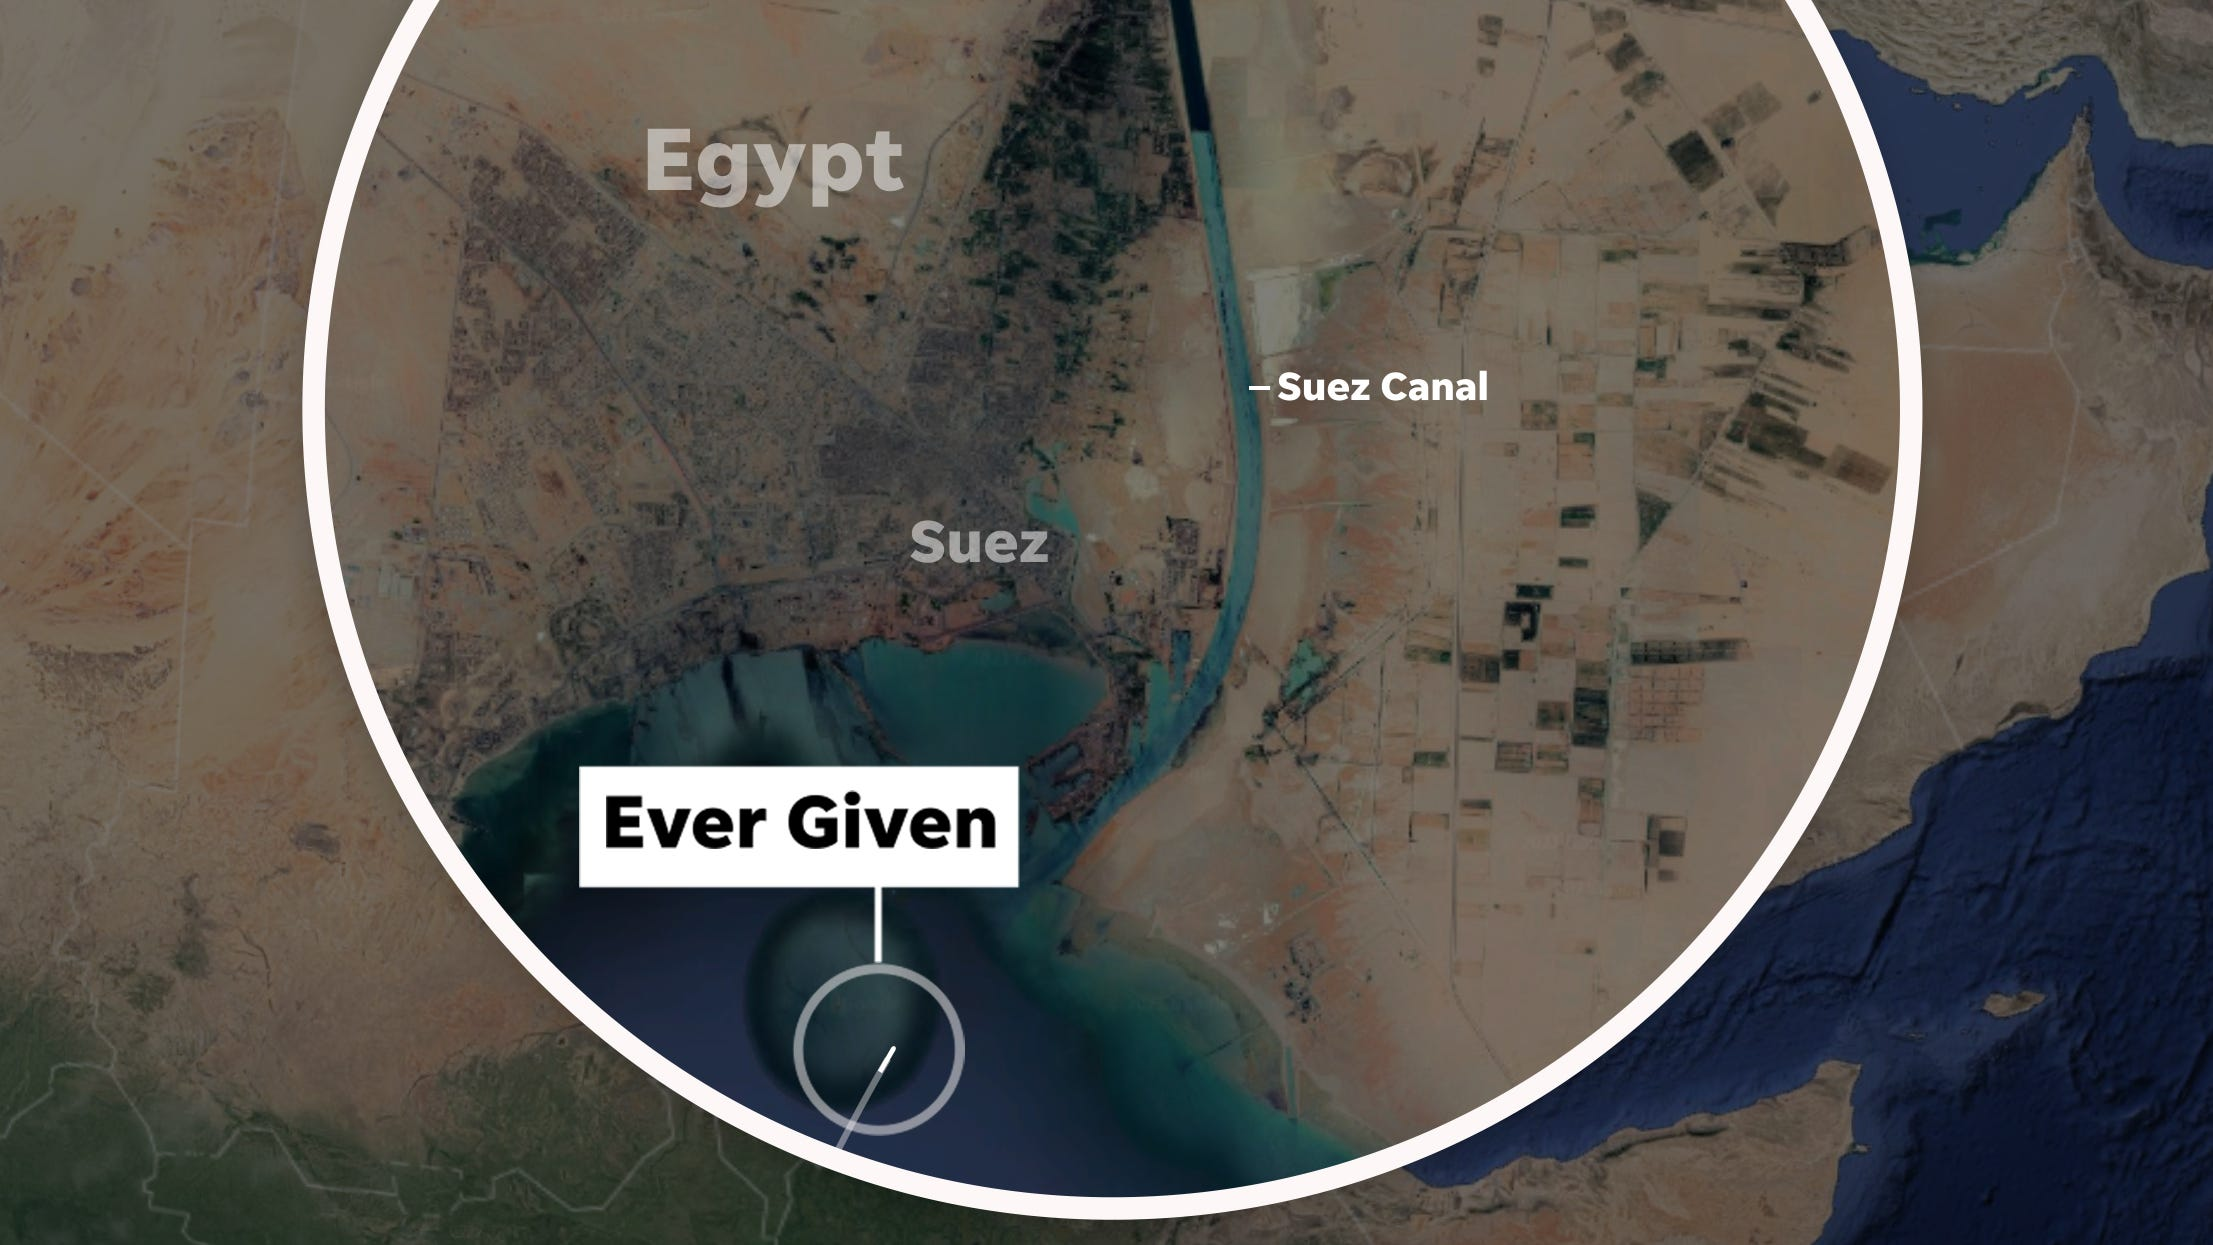 Suez Canal ship stuck: How did Ever Given get stuck?